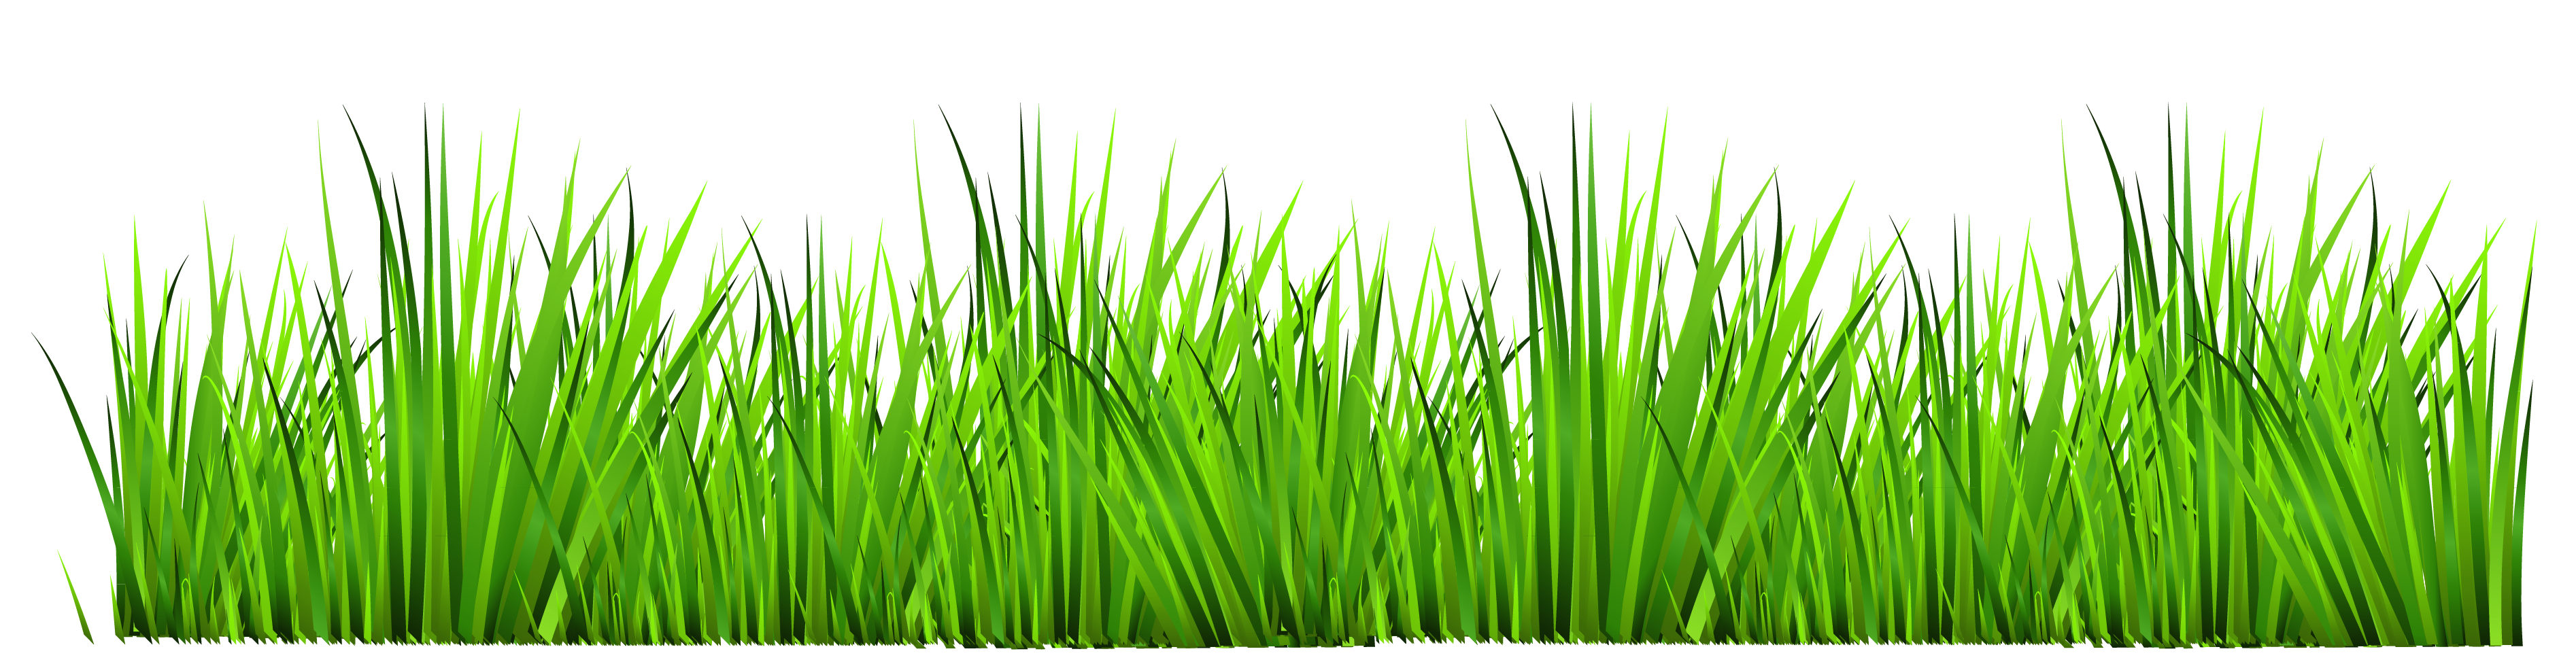 Vector grass png. Green image peoplepng com